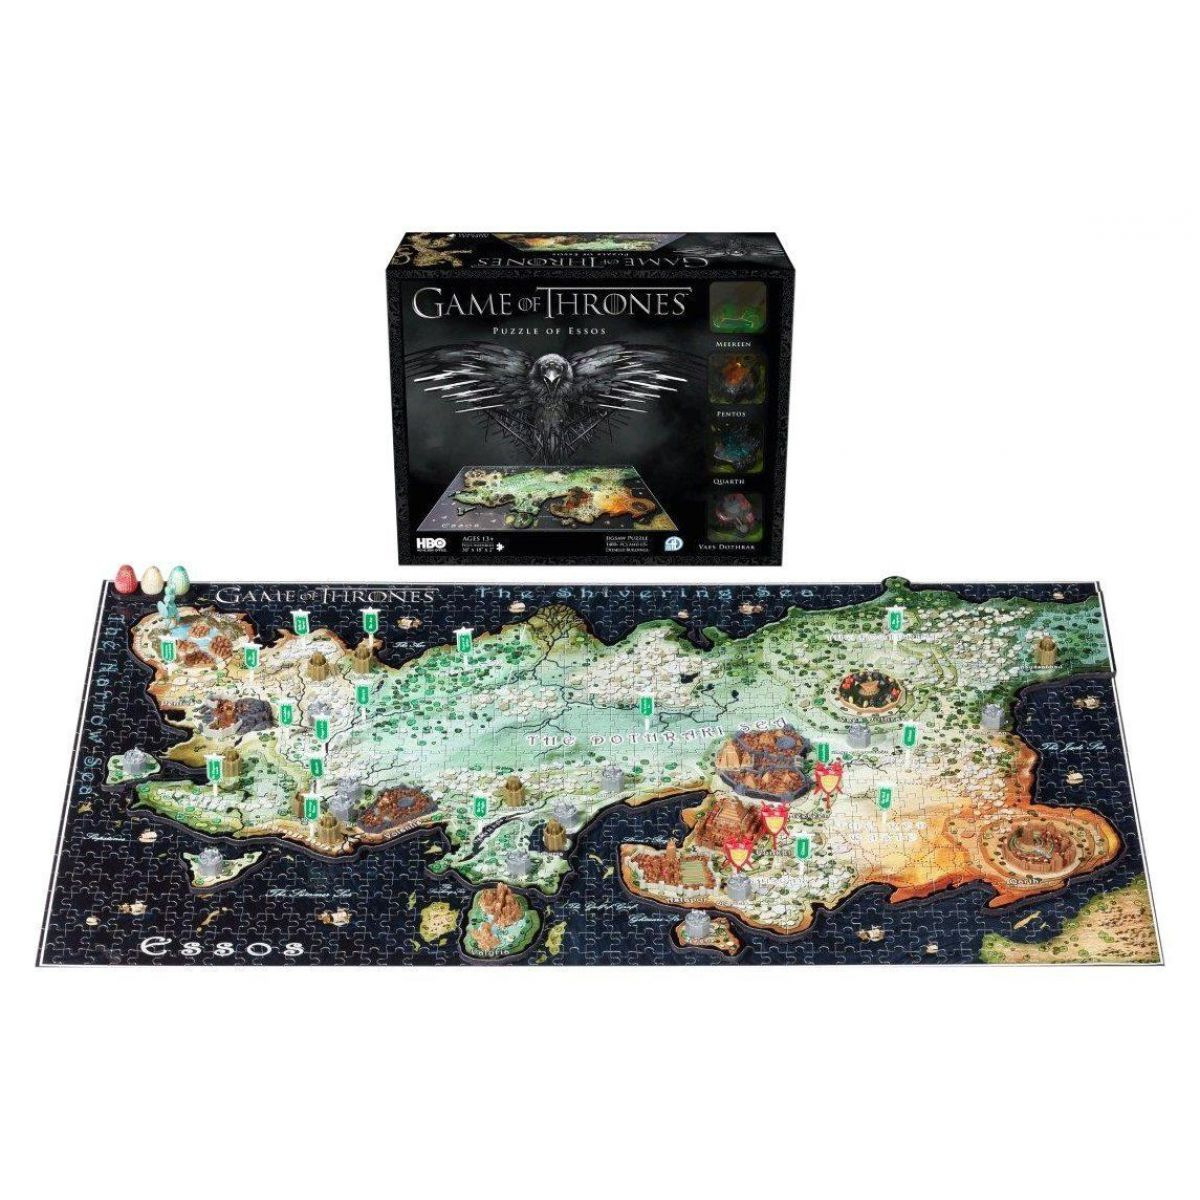 4D CITYSCAPE puzzle Hra o tróny Game of Thrones ESSO